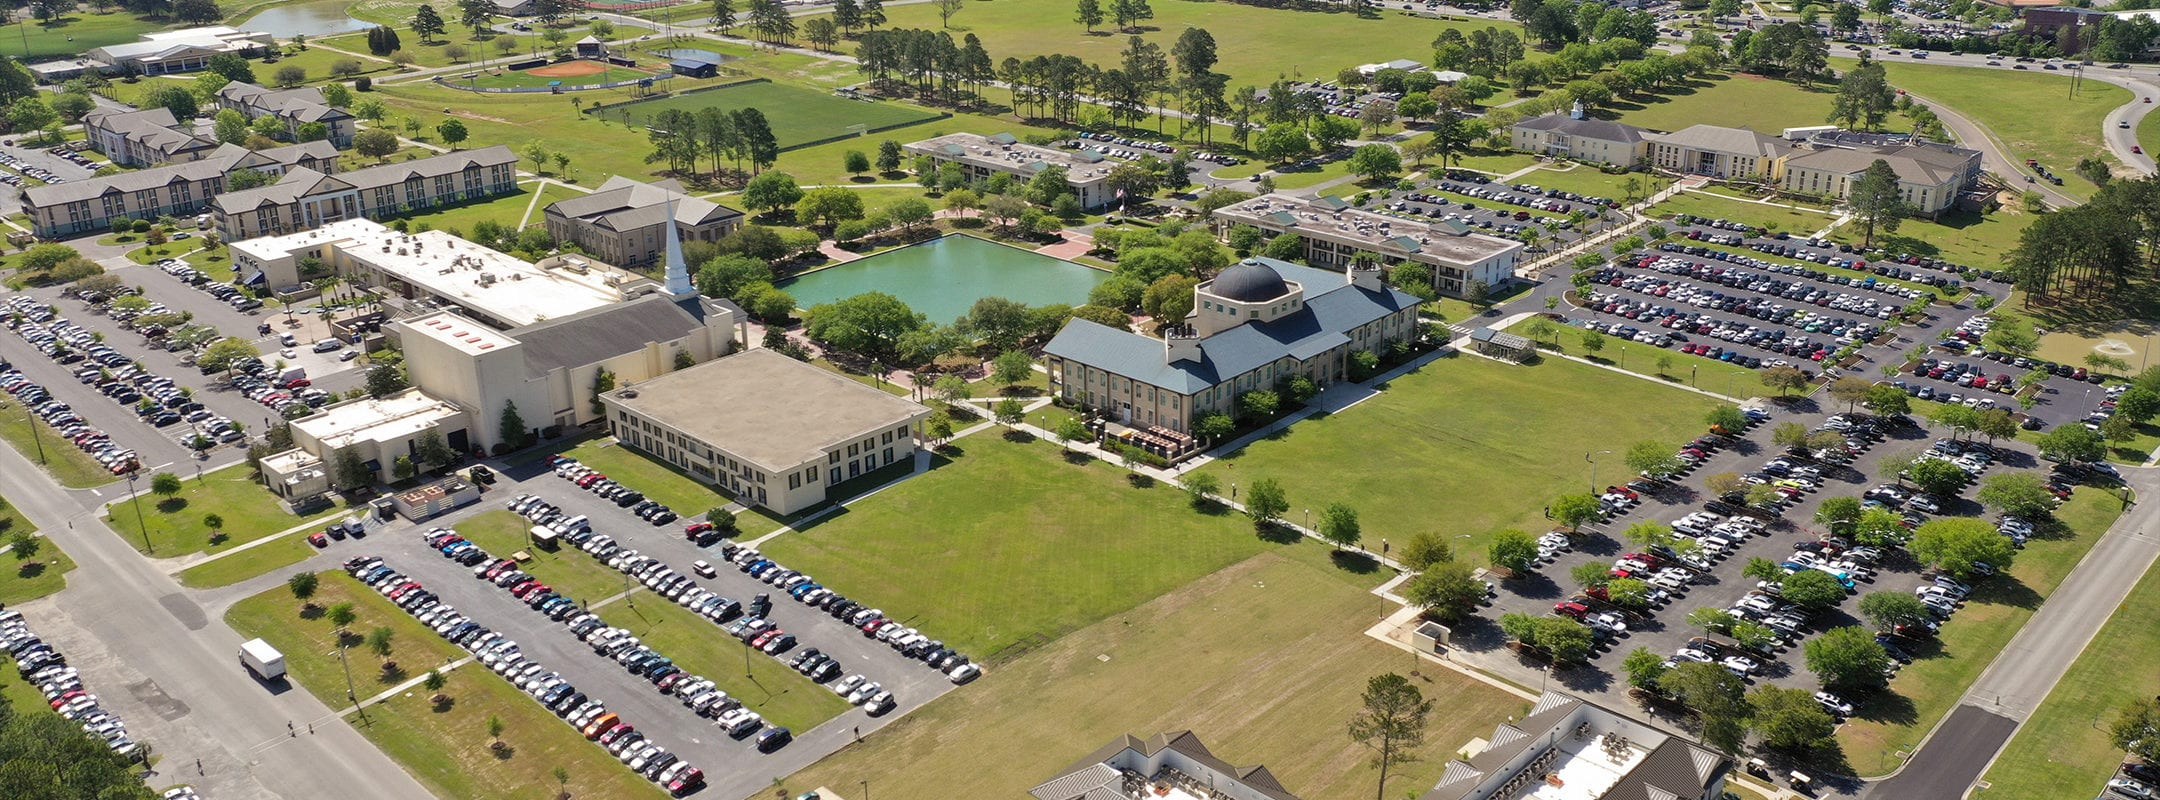 A birds eye view of Charleston Southern's campus.